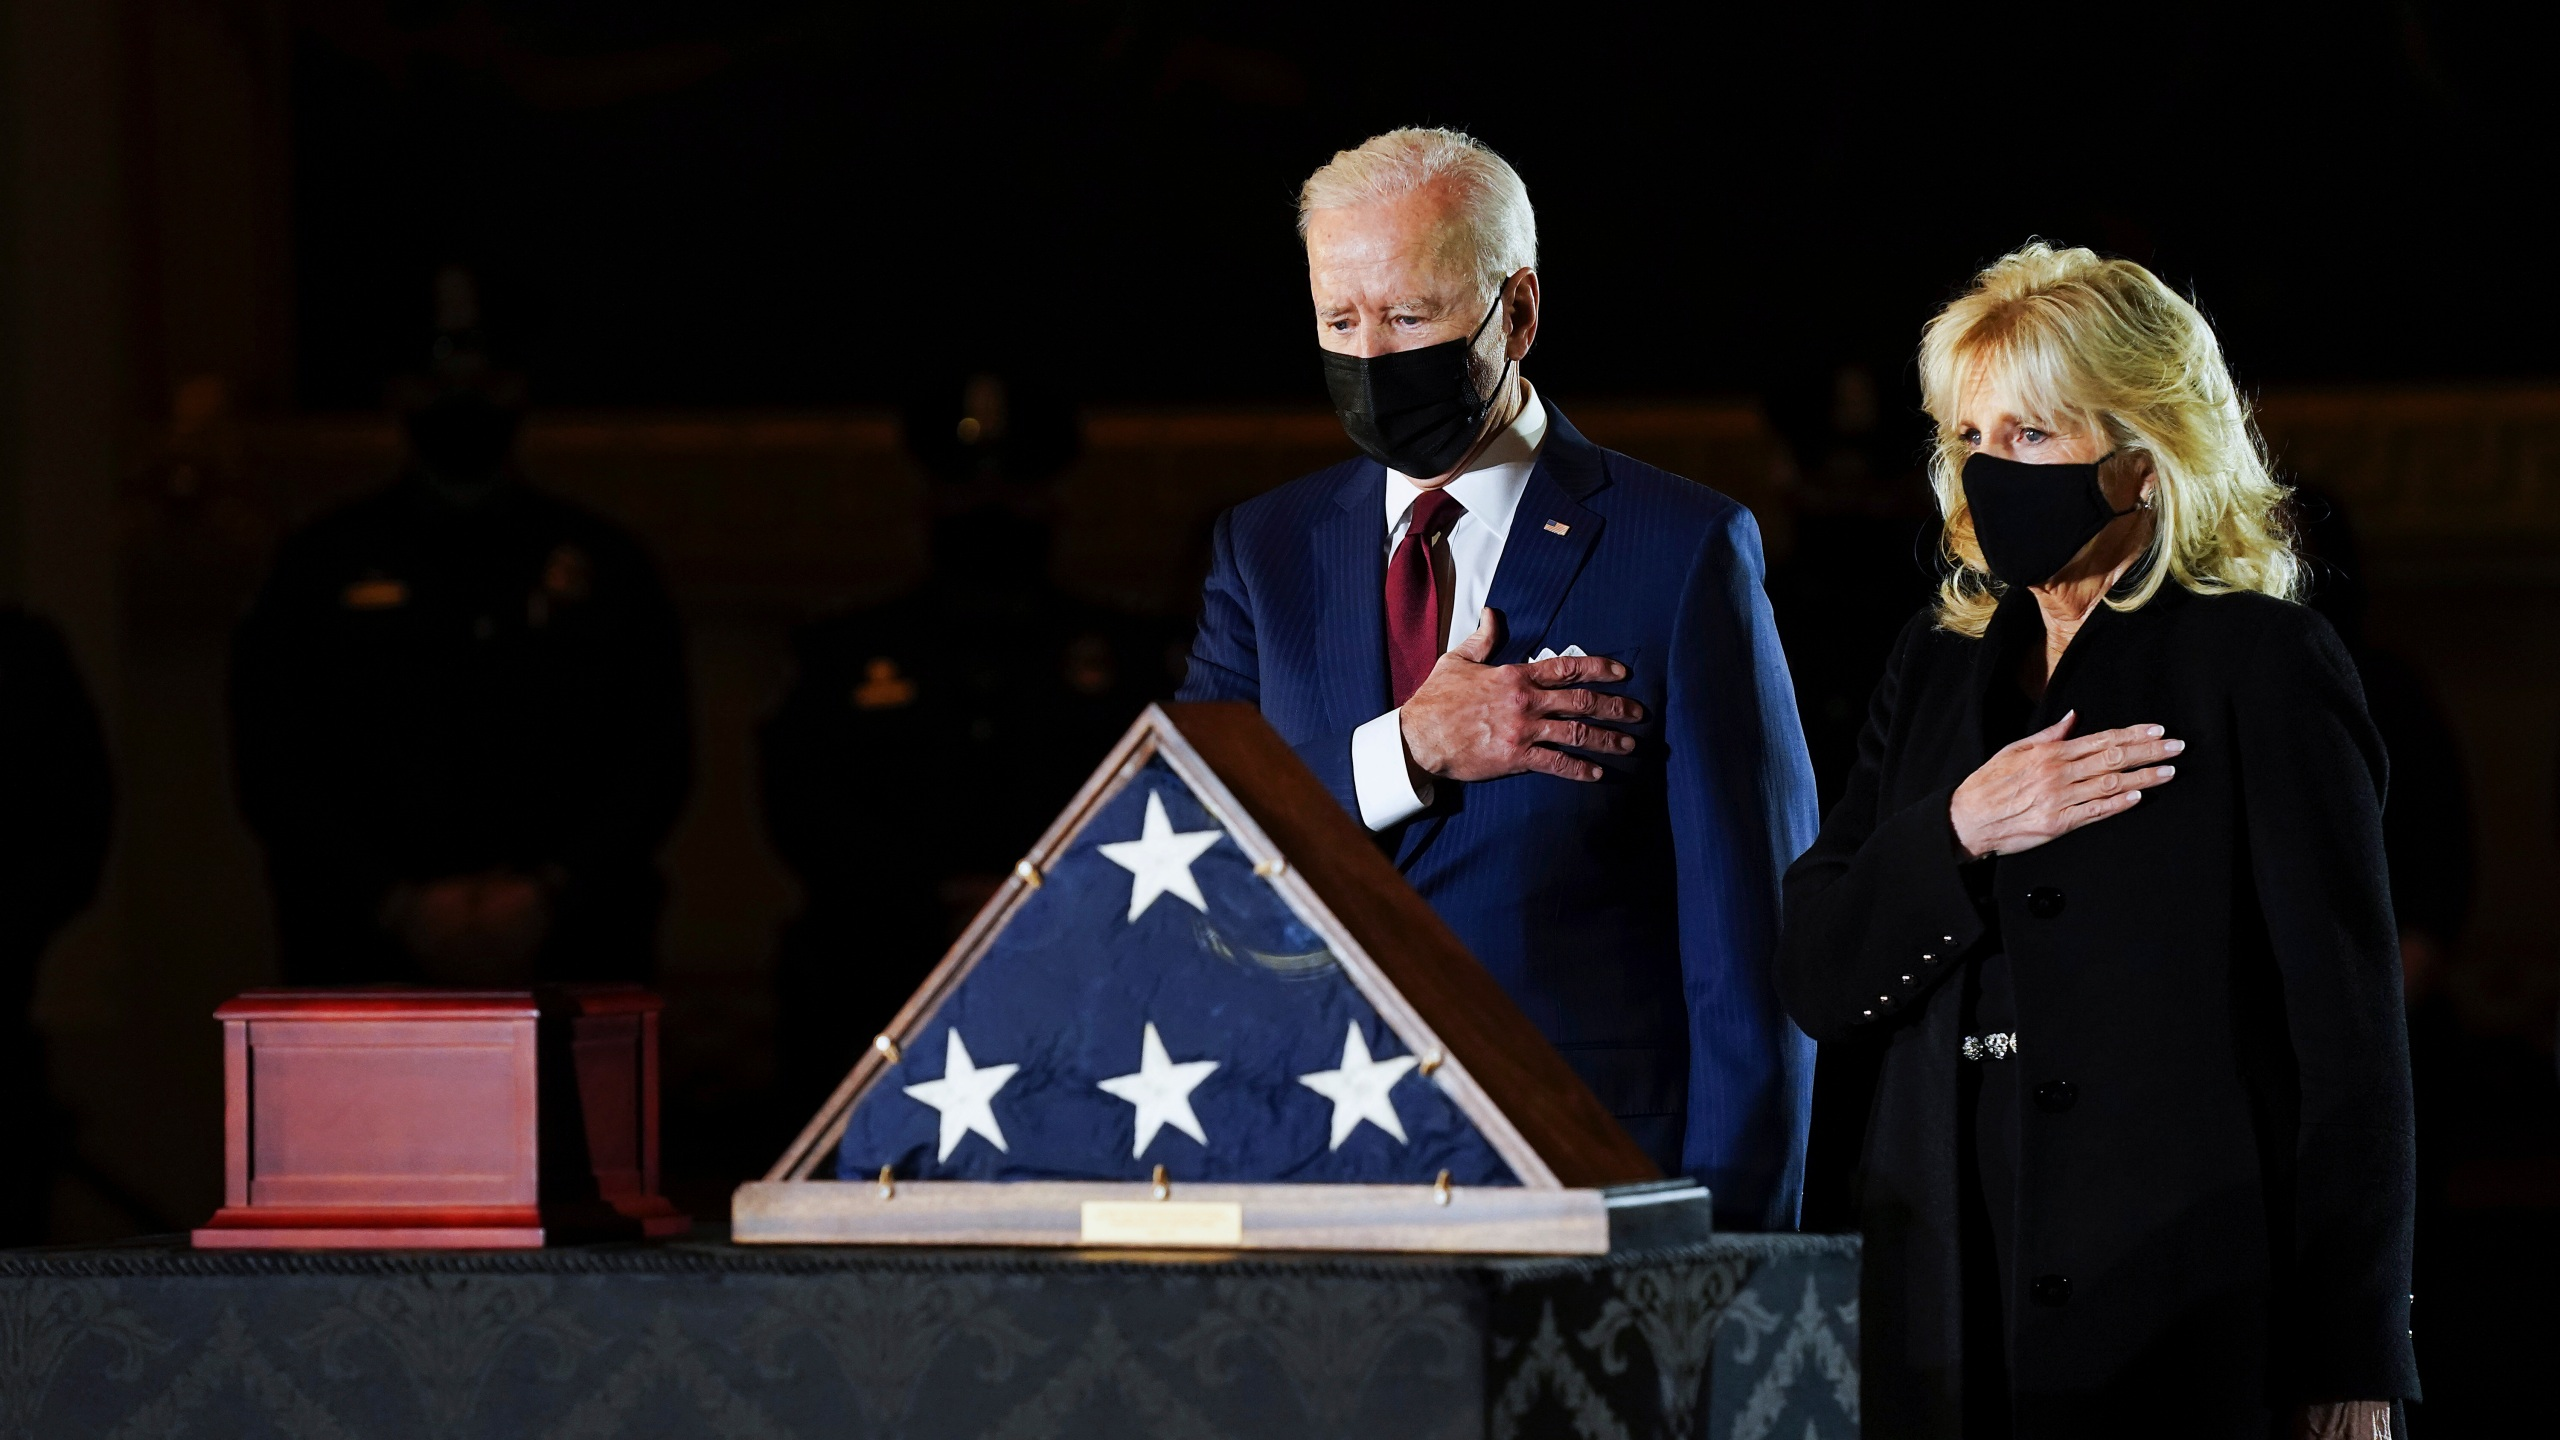 President Joe Biden and first lady Jill Biden pay their respects to the late U.S. Capitol Police Officer Brian Sicknick as an urn with his cremated remains lies in honor on a black-draped table at center of Capitol Rotunda on Feb. 2, 2021. (Erin Schaff / The New York Times via Associated Press)